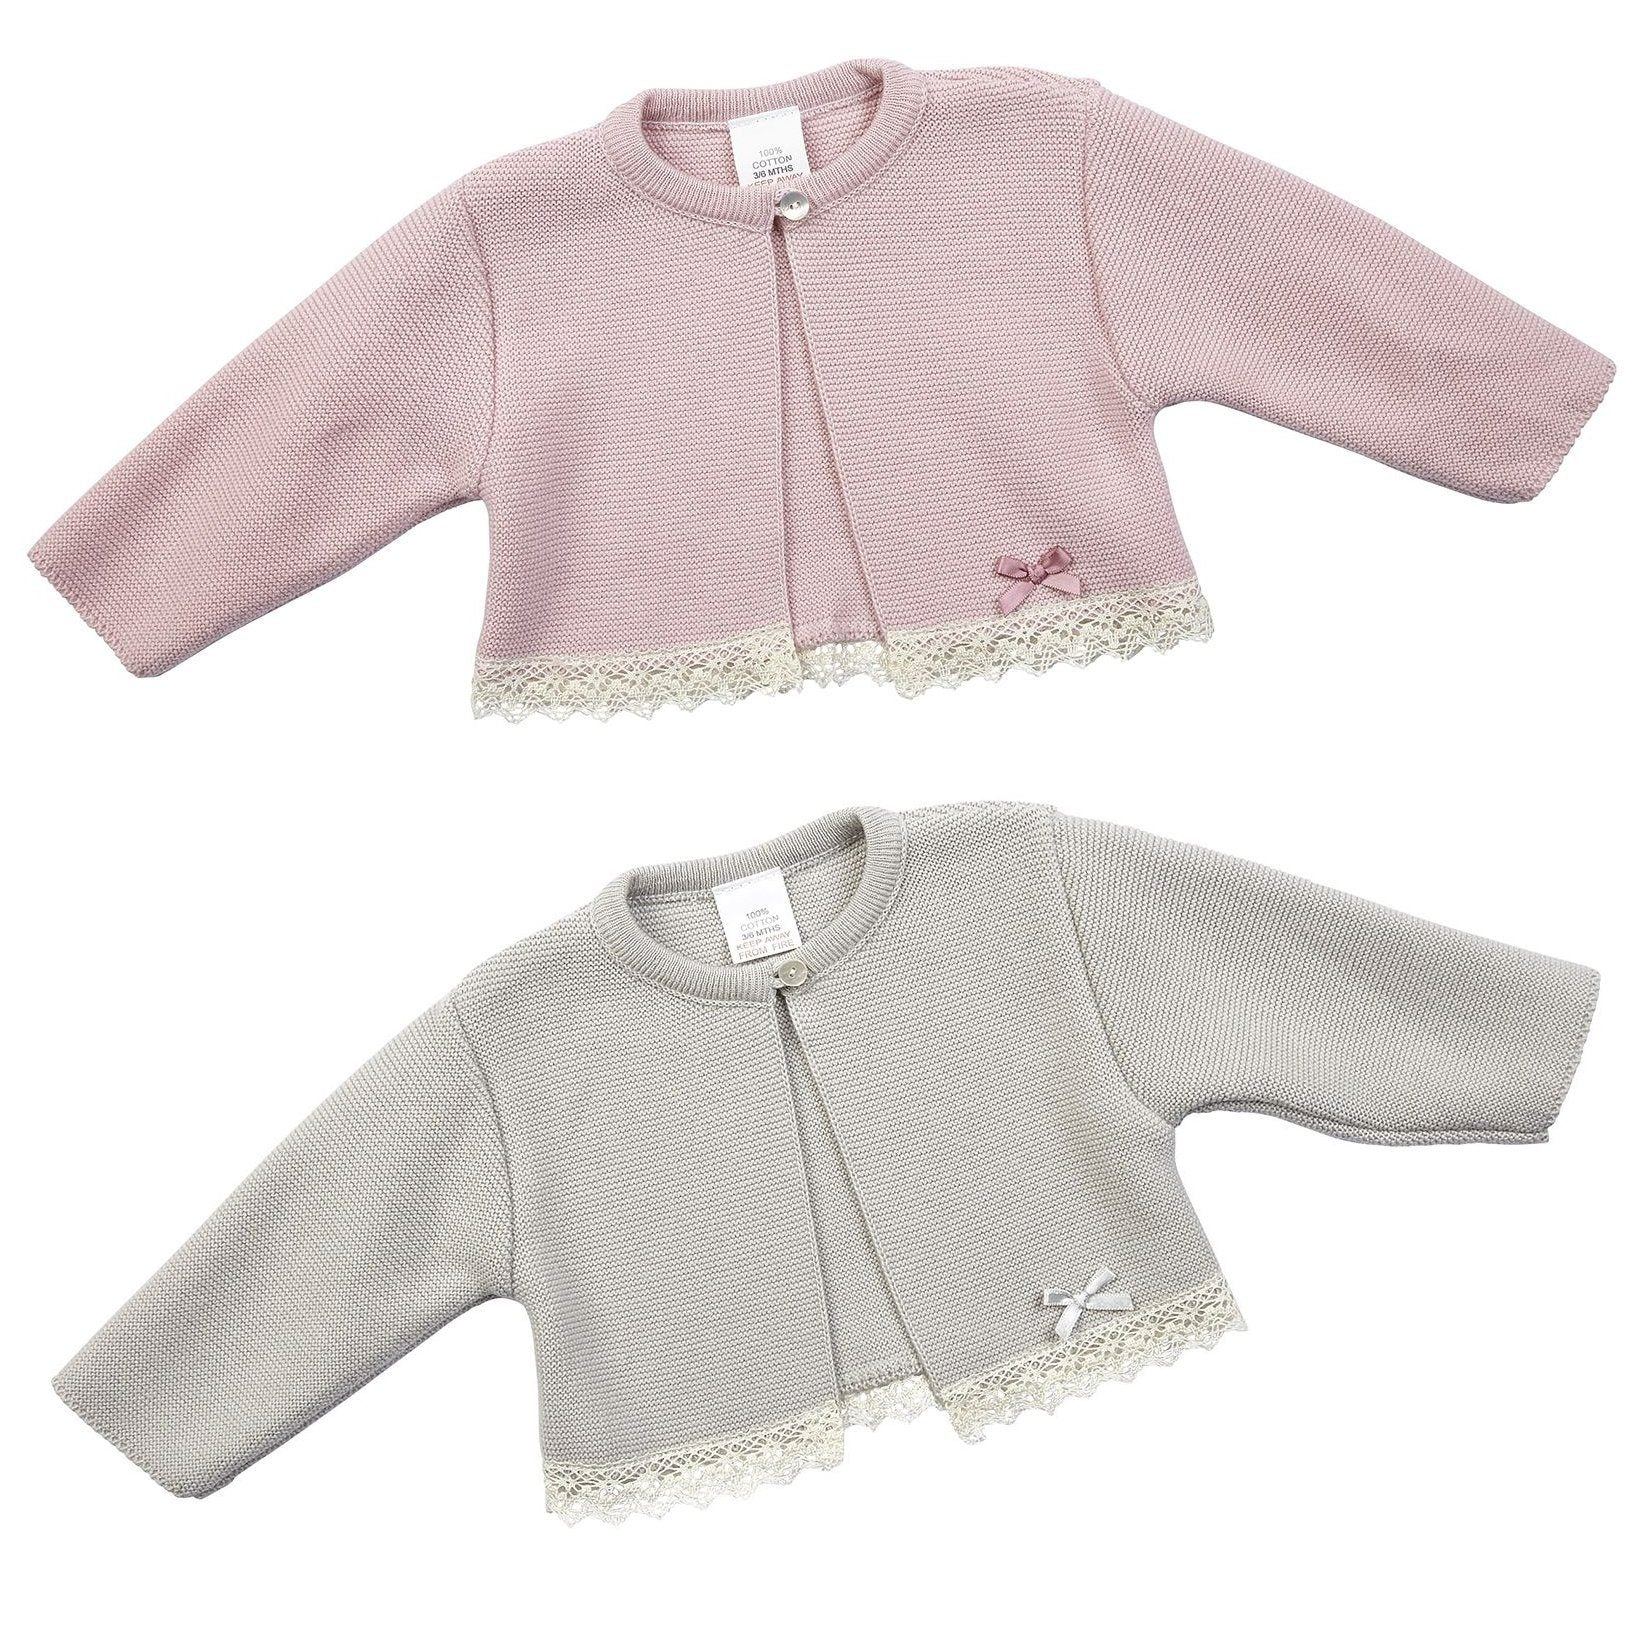 Dandelion Cotton Bolero with Lace Trim | Millie and John